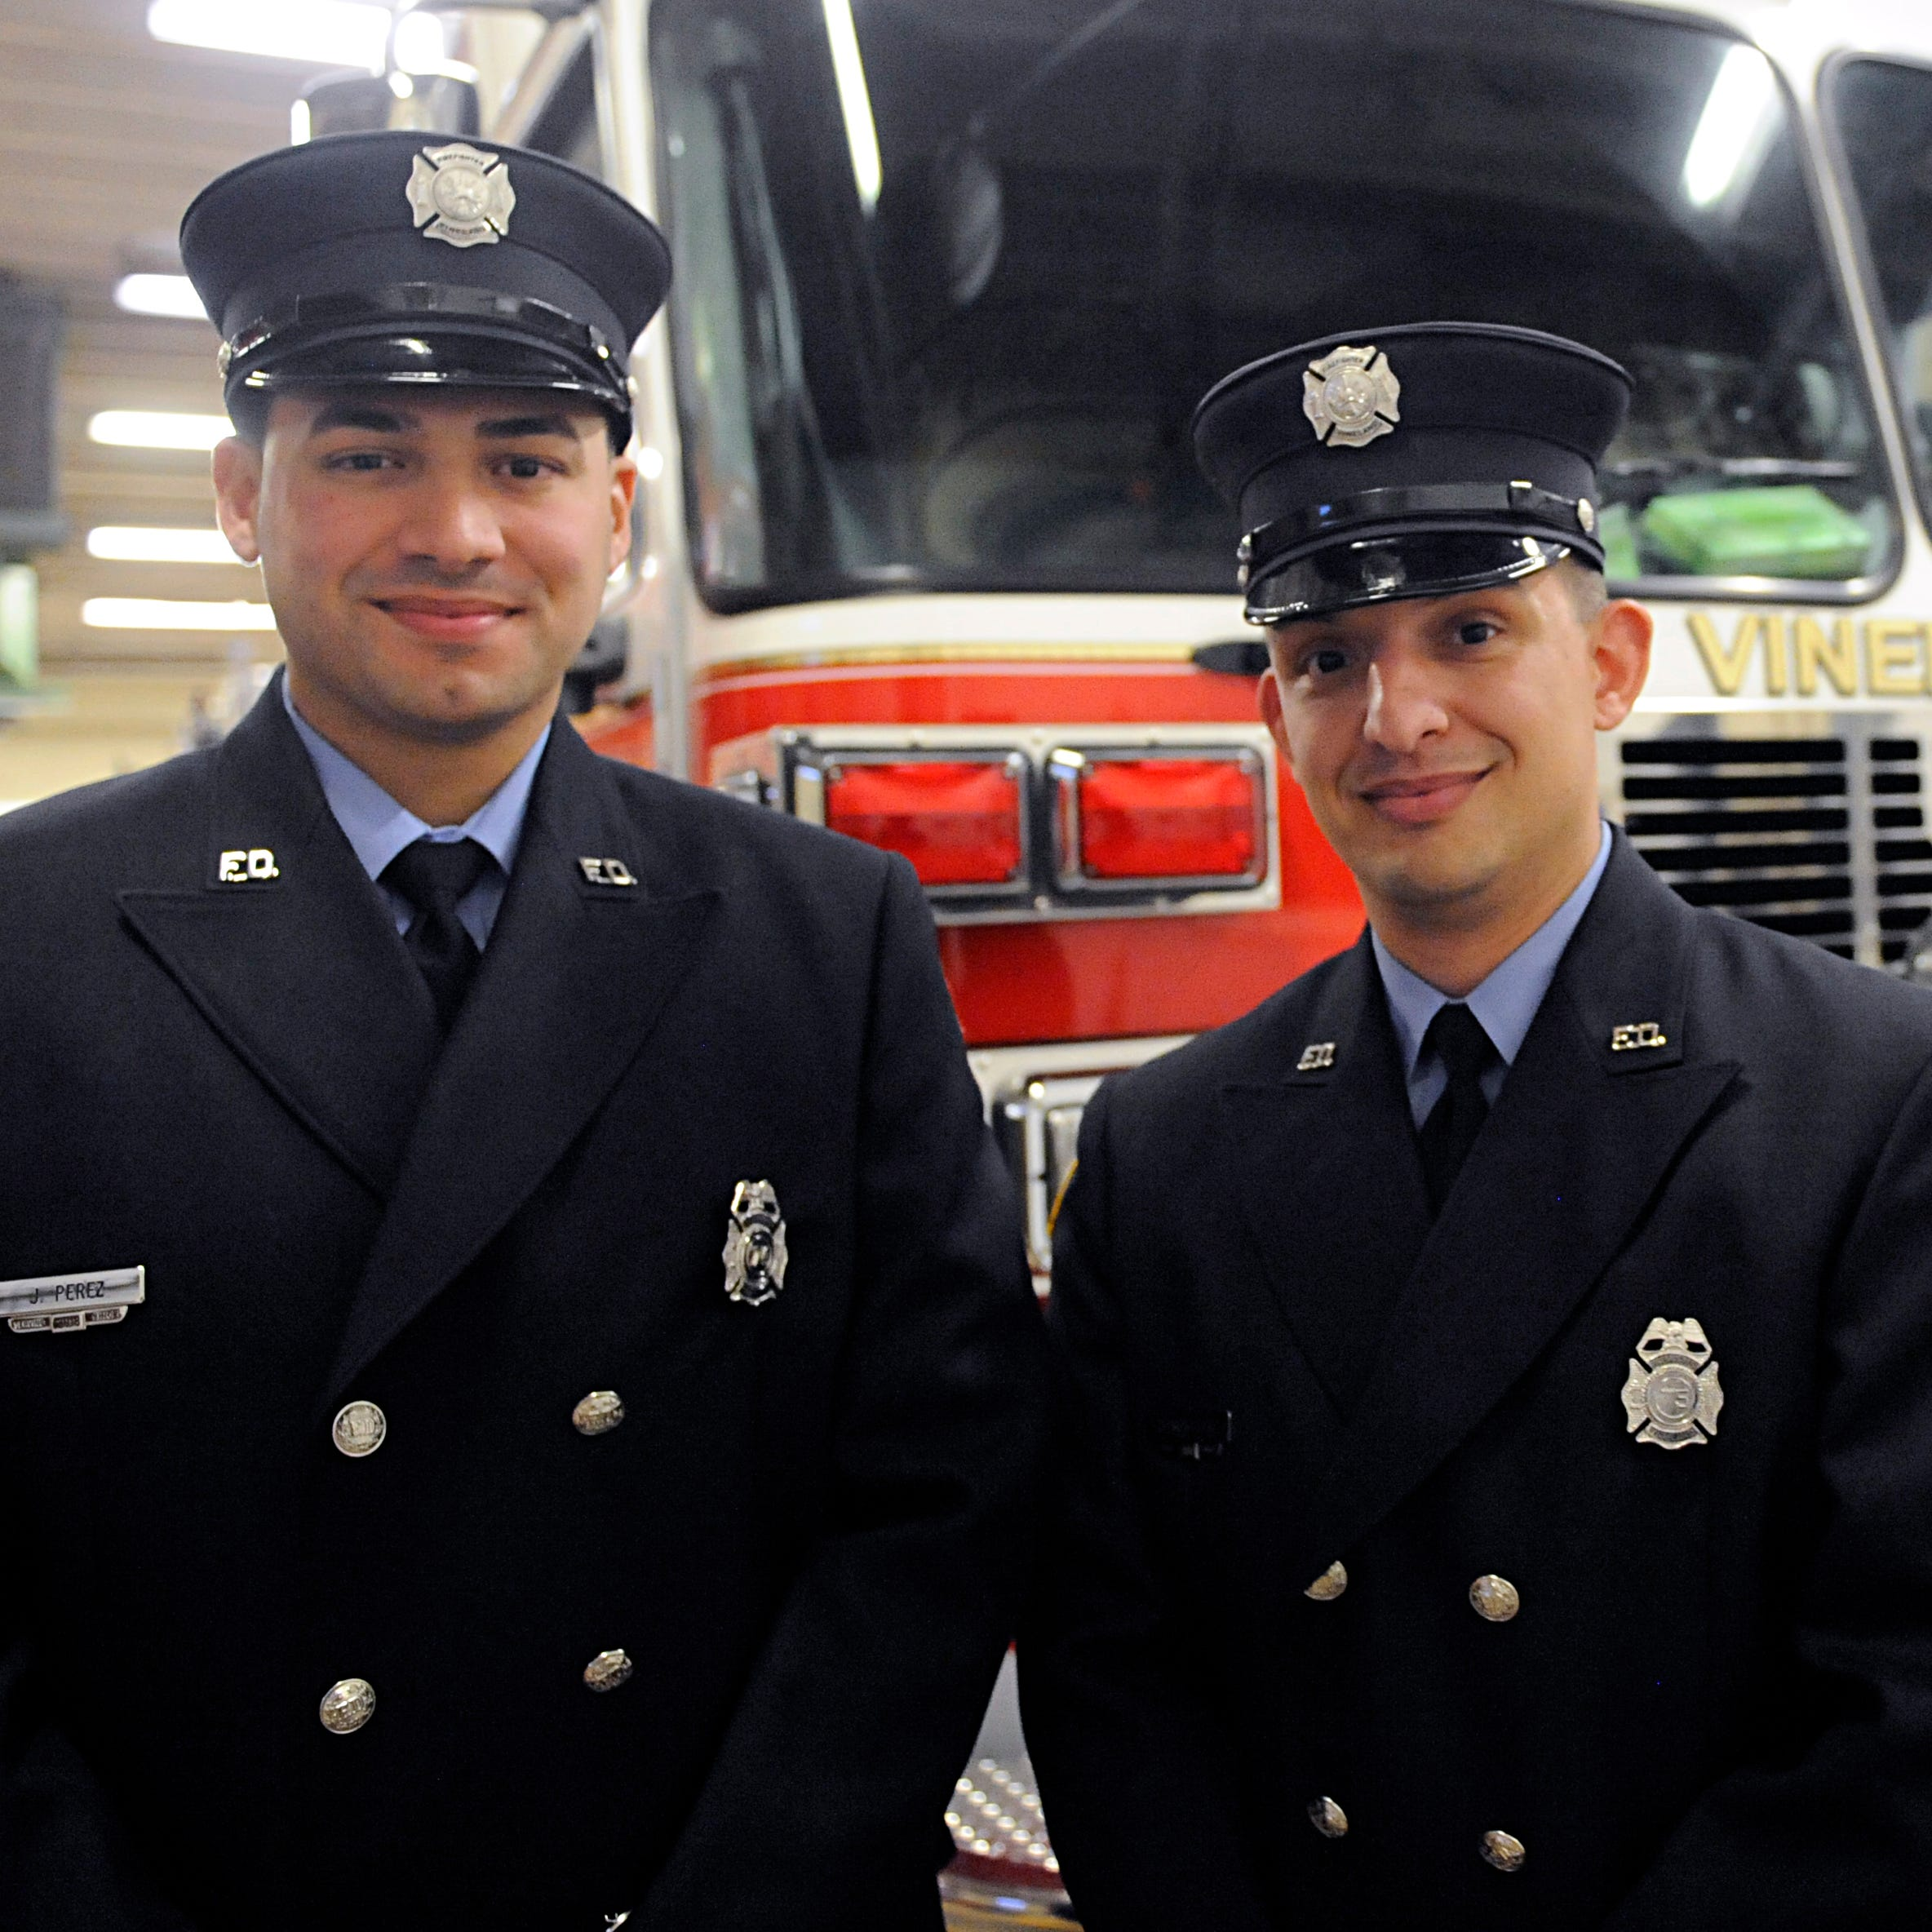 Vineland Fire Department adds two to crew